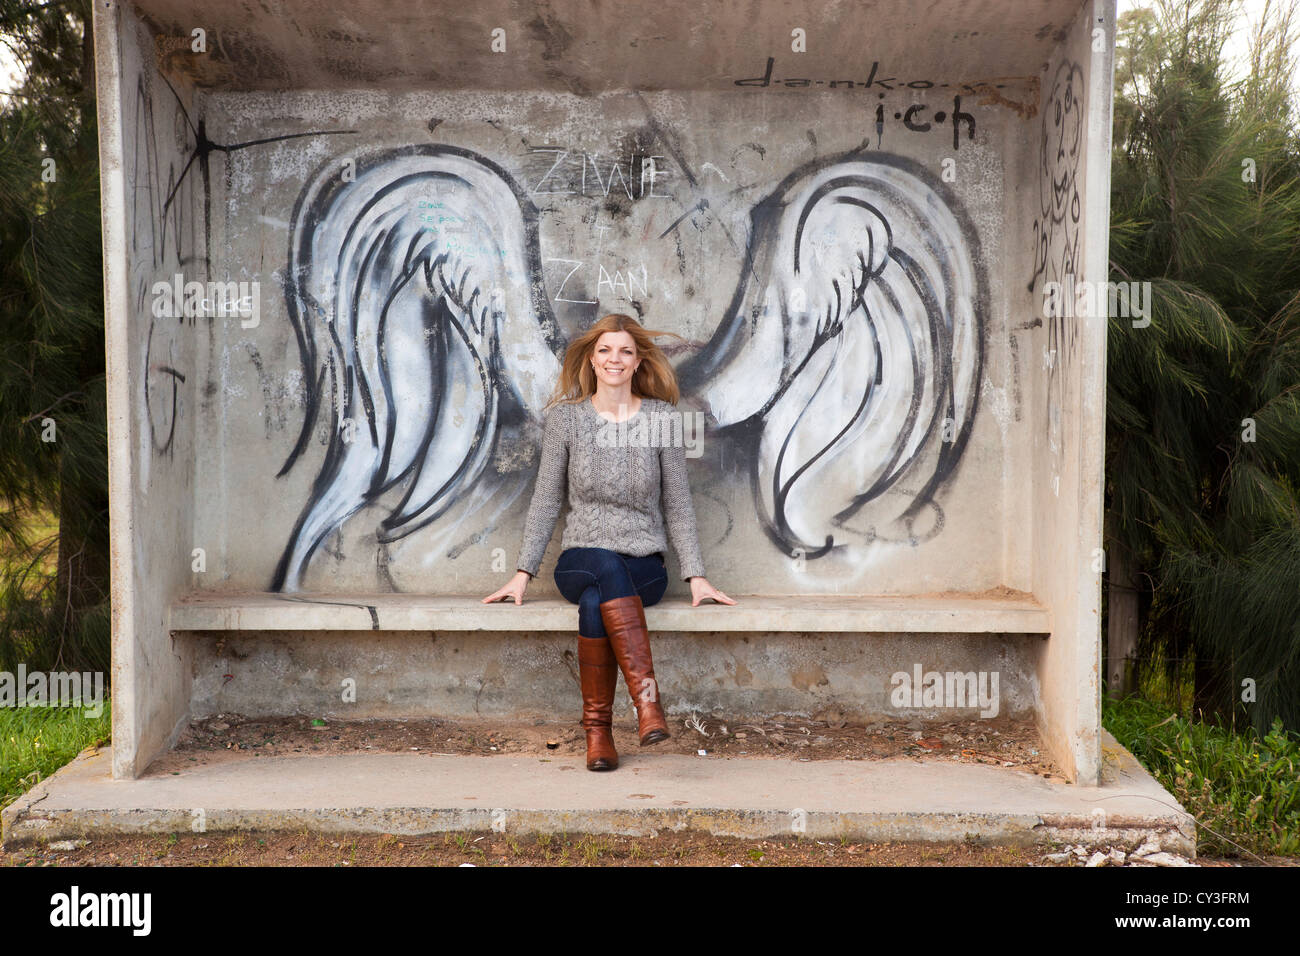 Blond haired woman sitting at bus stop with graffiti angel wings. - Stock Image